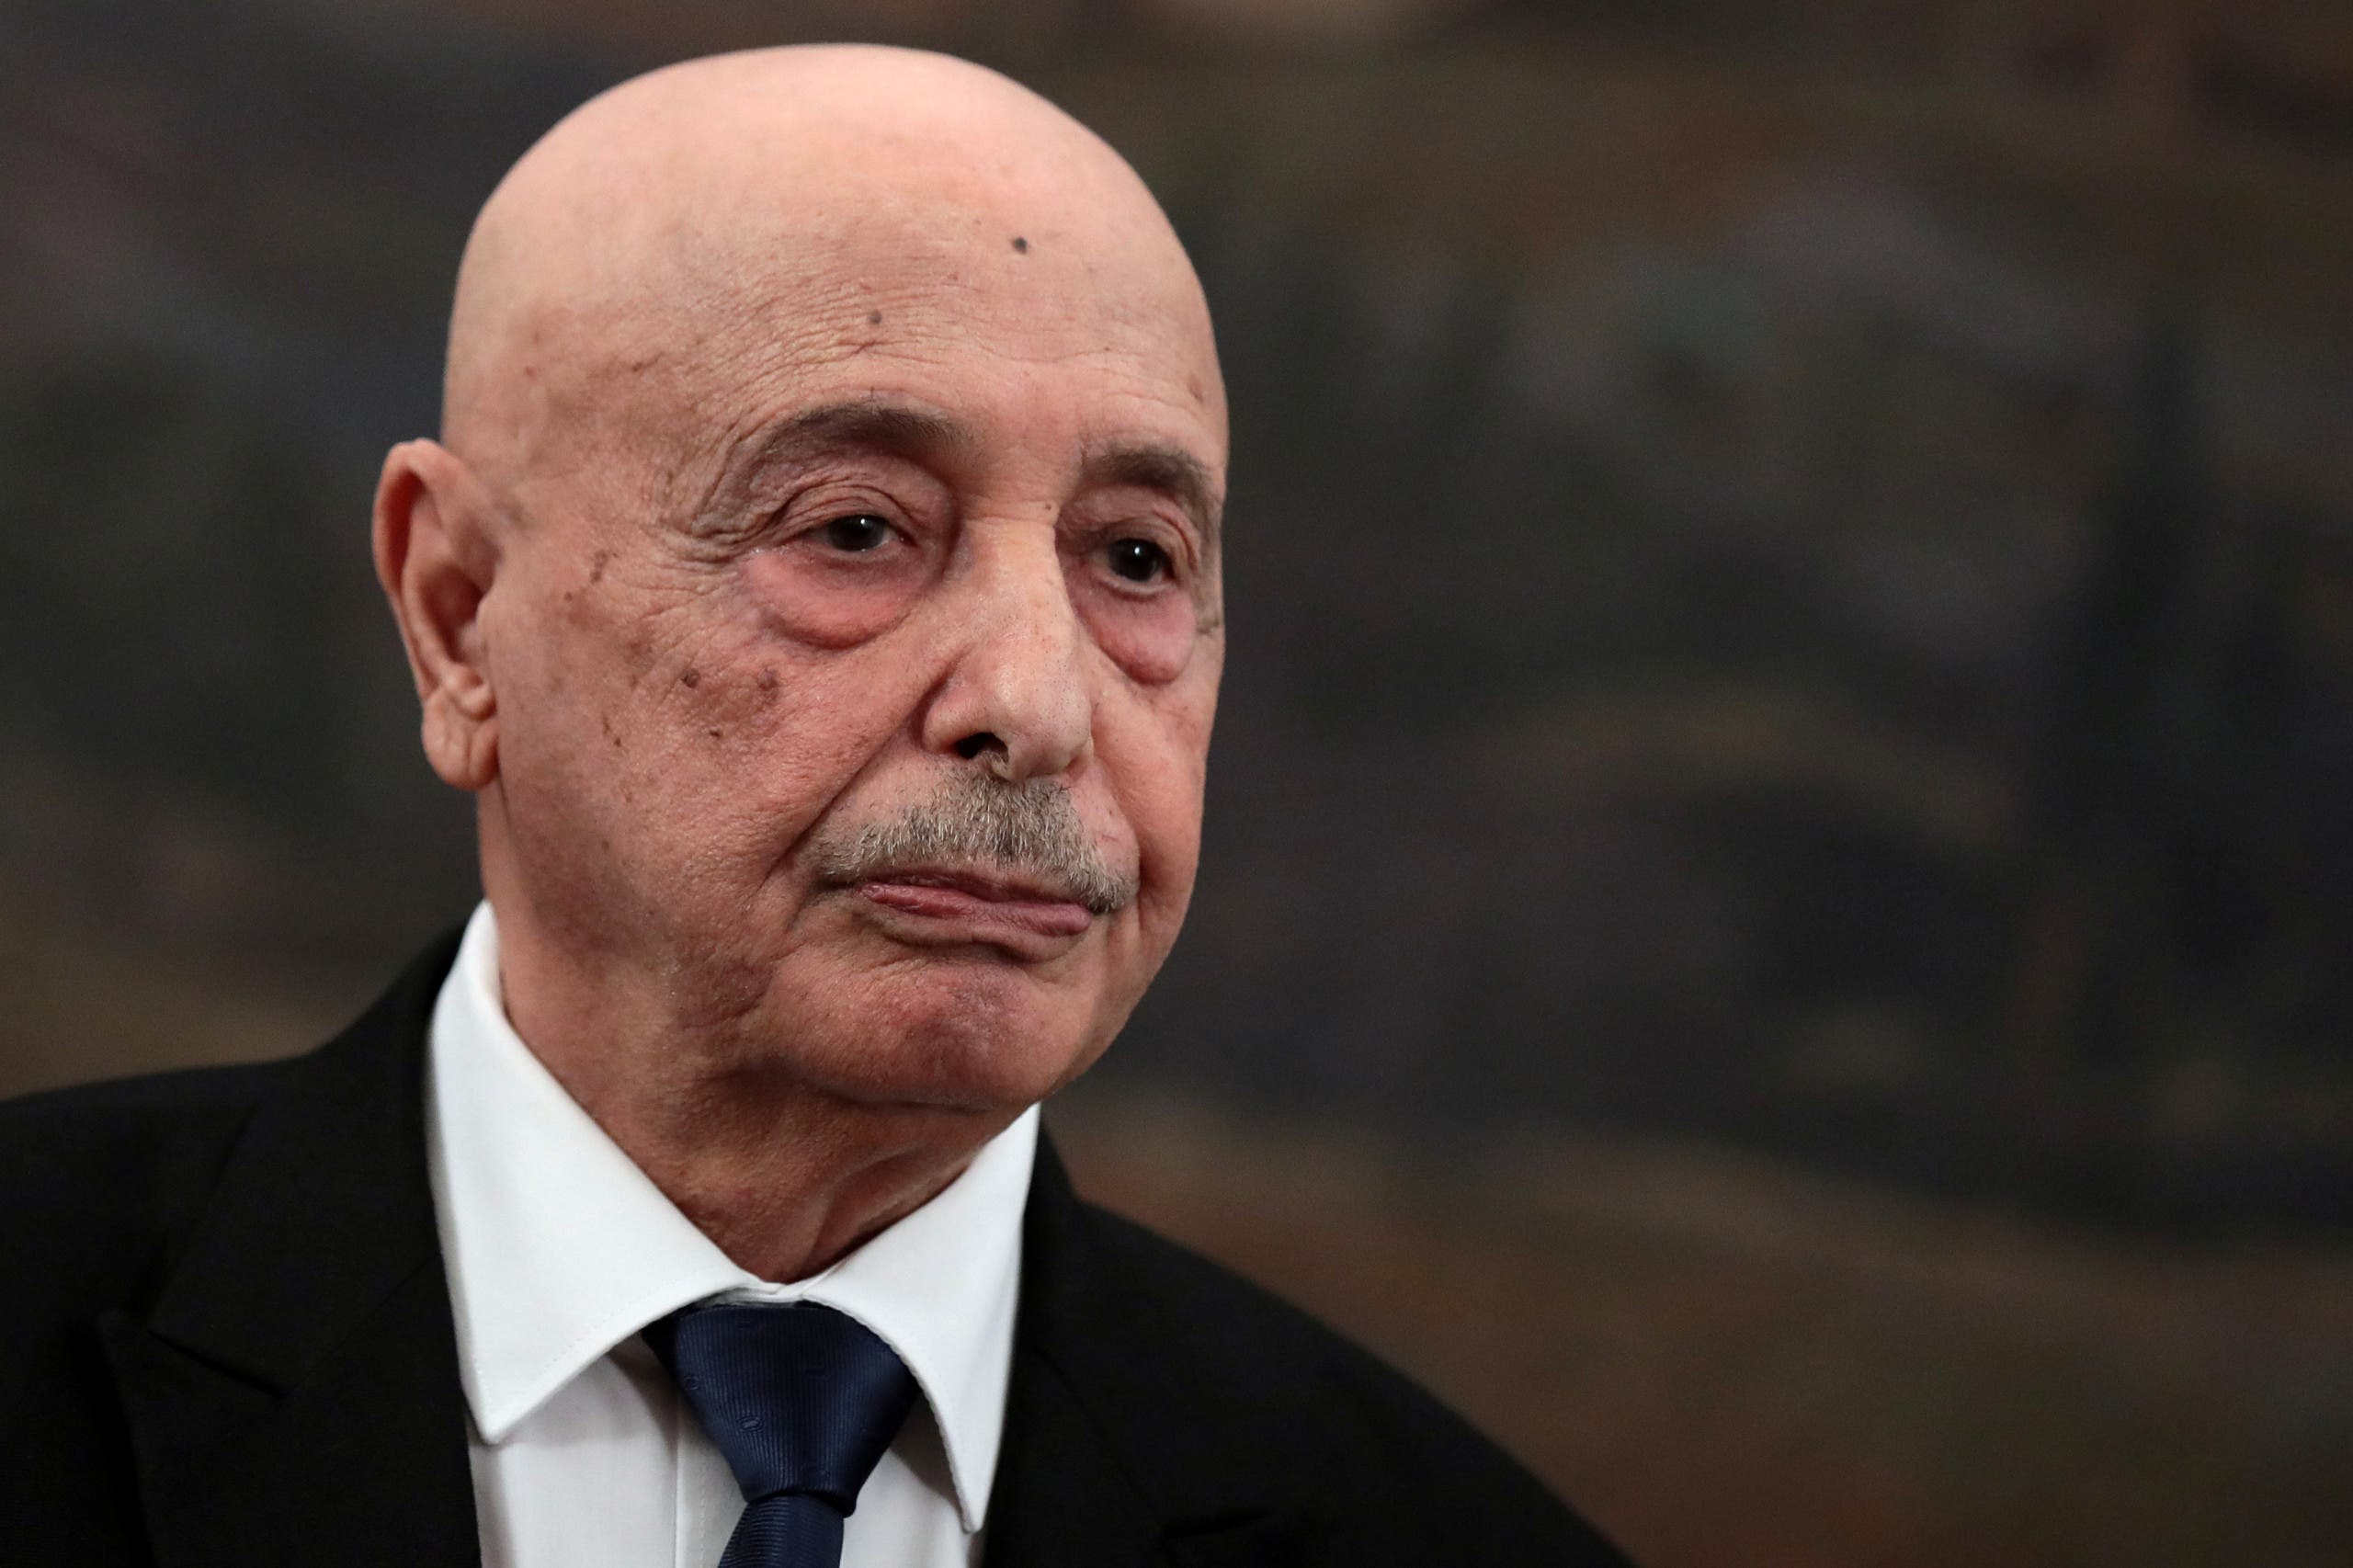 Libya's parliament speaker Aguila Saleh, looks on during a joint statement with Greek parliament speaker Konstantinos Tasoulas and Greek Foreign Minister Nikos Dendias (not pictured) following their meeting, at the parliament in Athens, Greece December 12, 2019. (File photo: Reuters)